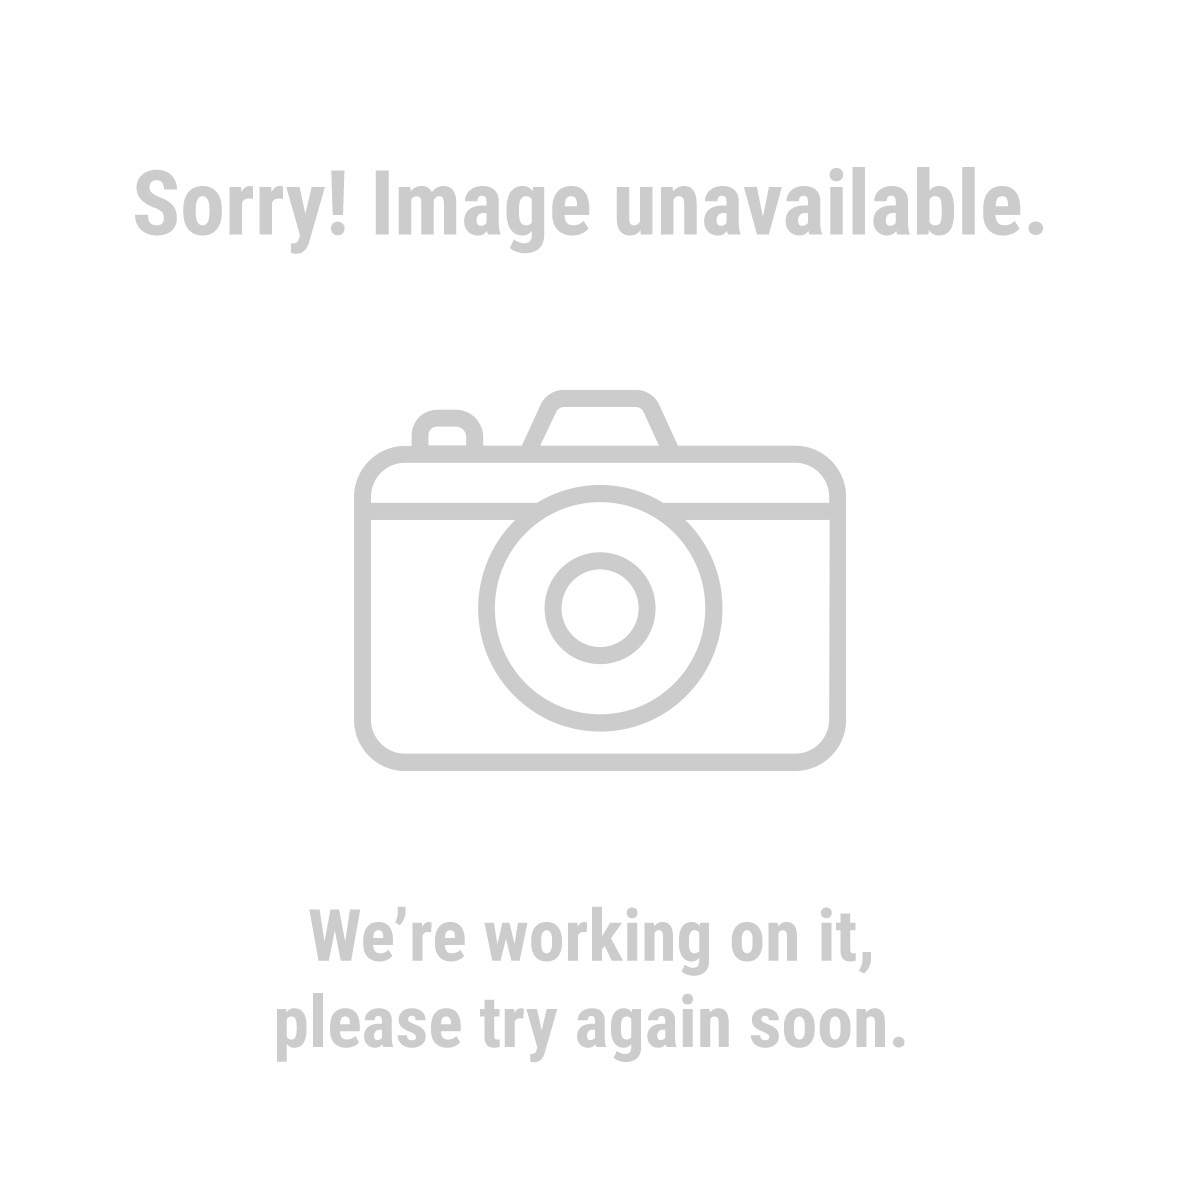 Warrior 68883 7 in. Segmented Dry Cut Diamond Blade for Masonry